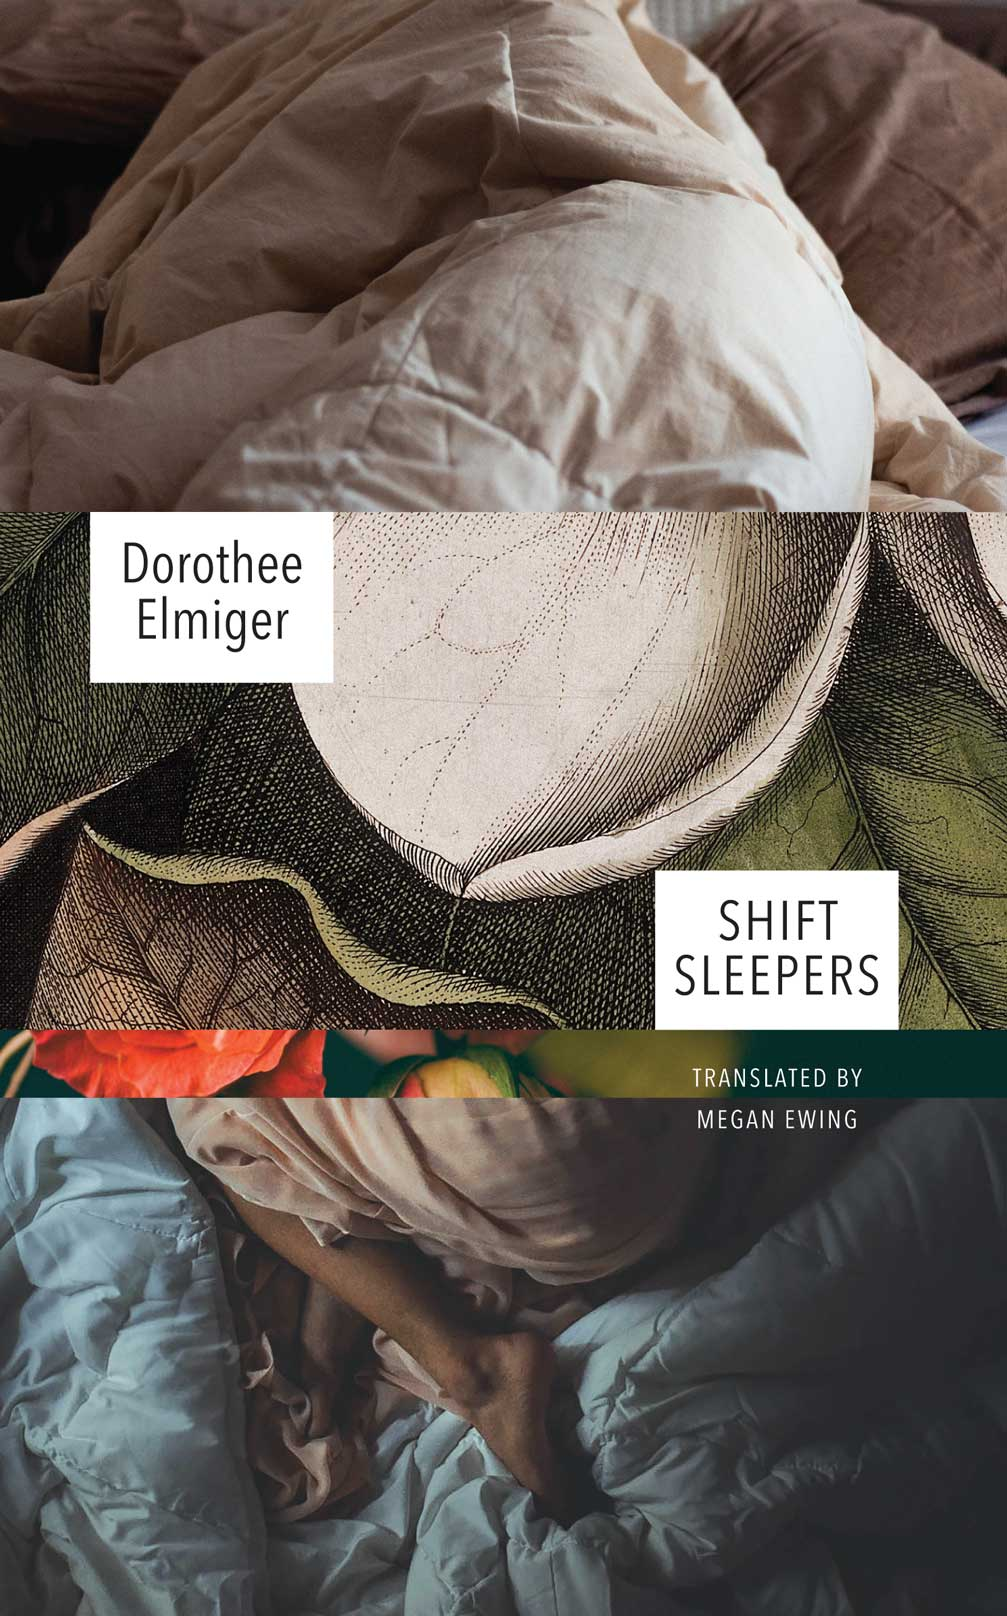 Shift Sleepers by Dorothee Elmiger | Seagull Books